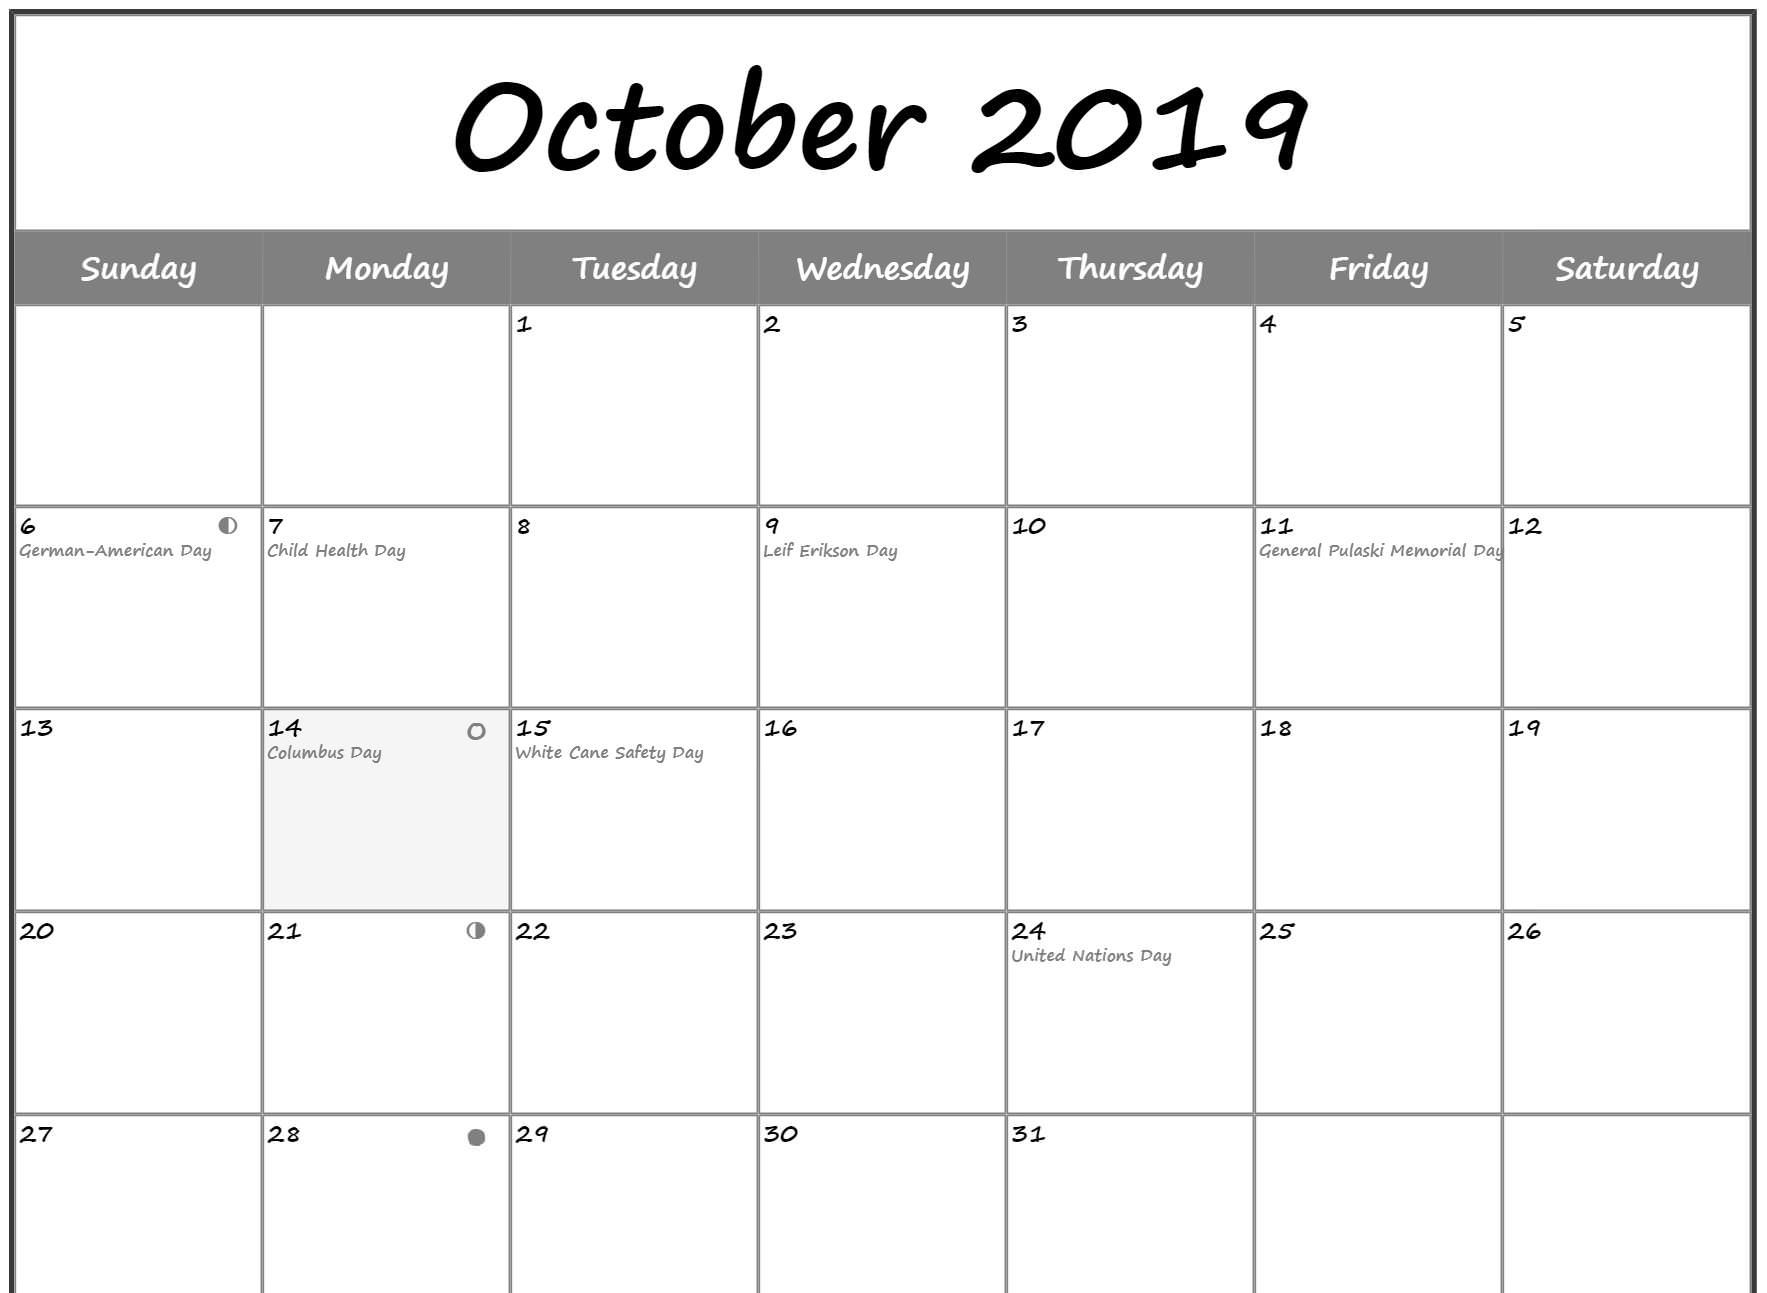 October 2019 Calendar Moon Phases With Holidays